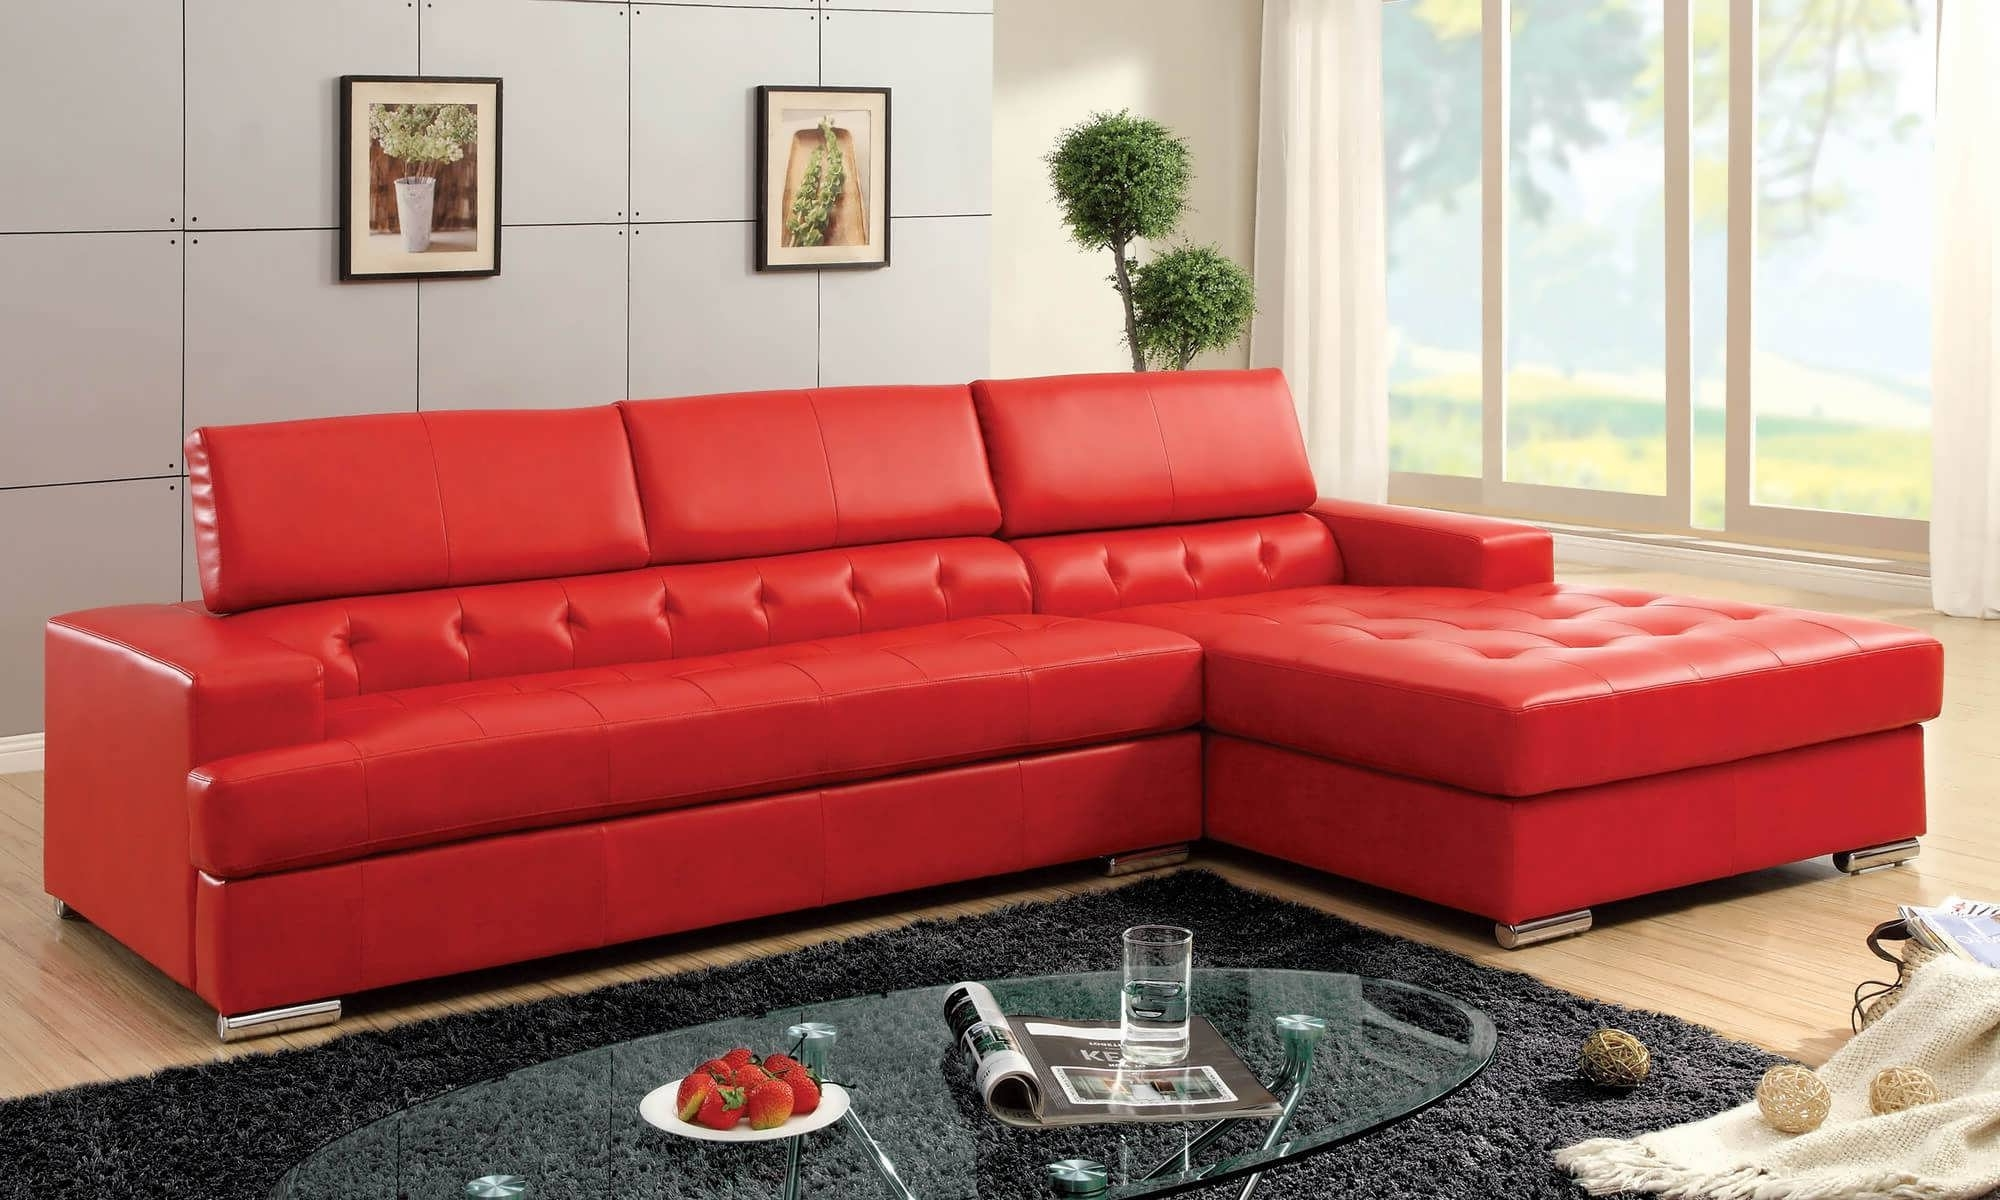 Red Sectional Sofas With Chaise With Famous Sofa : Small L Shaped Couch U Shaped Sofa Red Sectional Sofa Comfy (View 10 of 15)